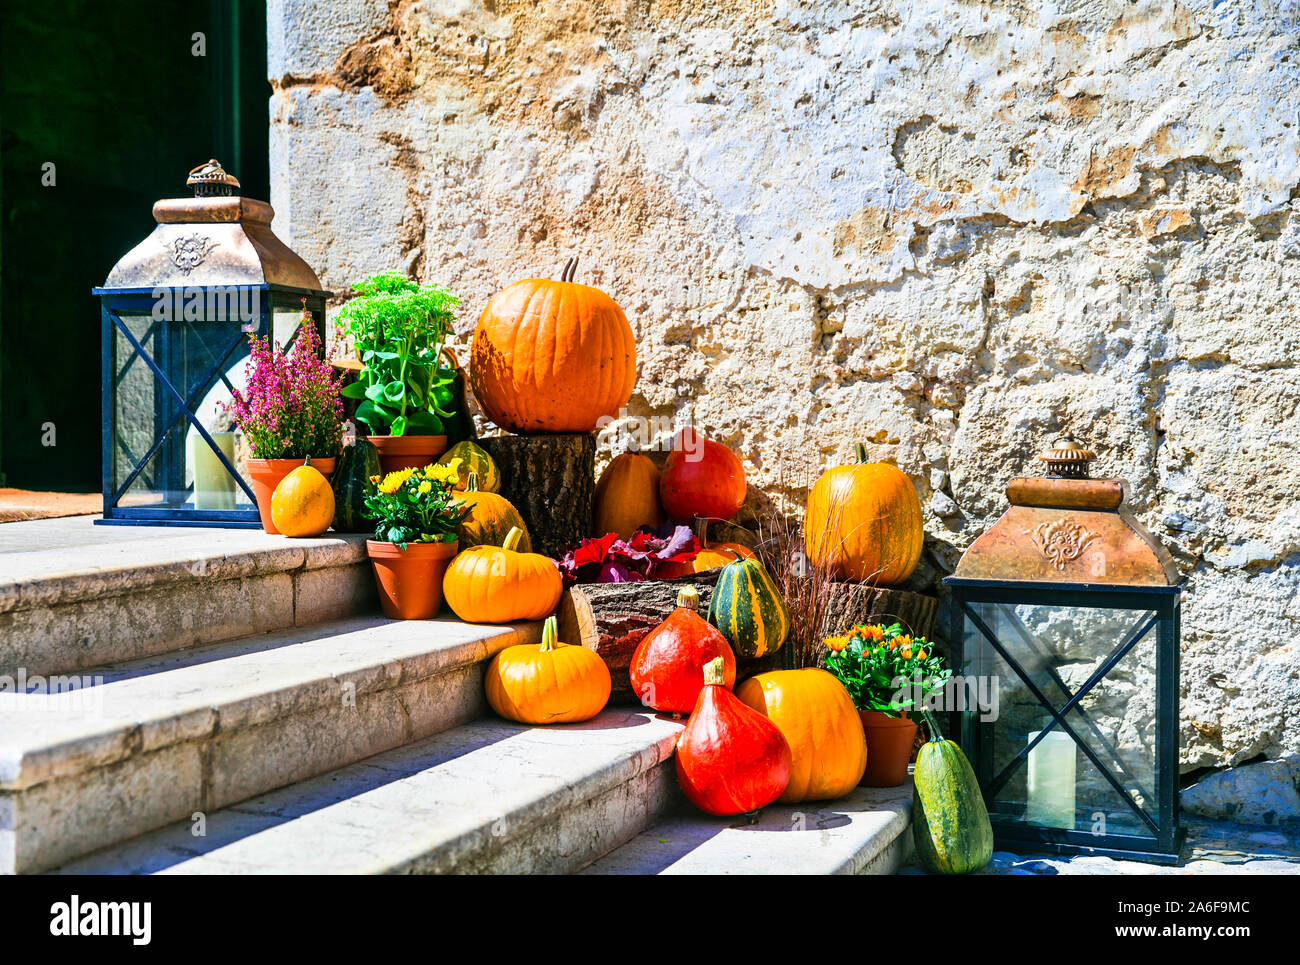 autumn still life and street decoration with pumpkins Stock Photo